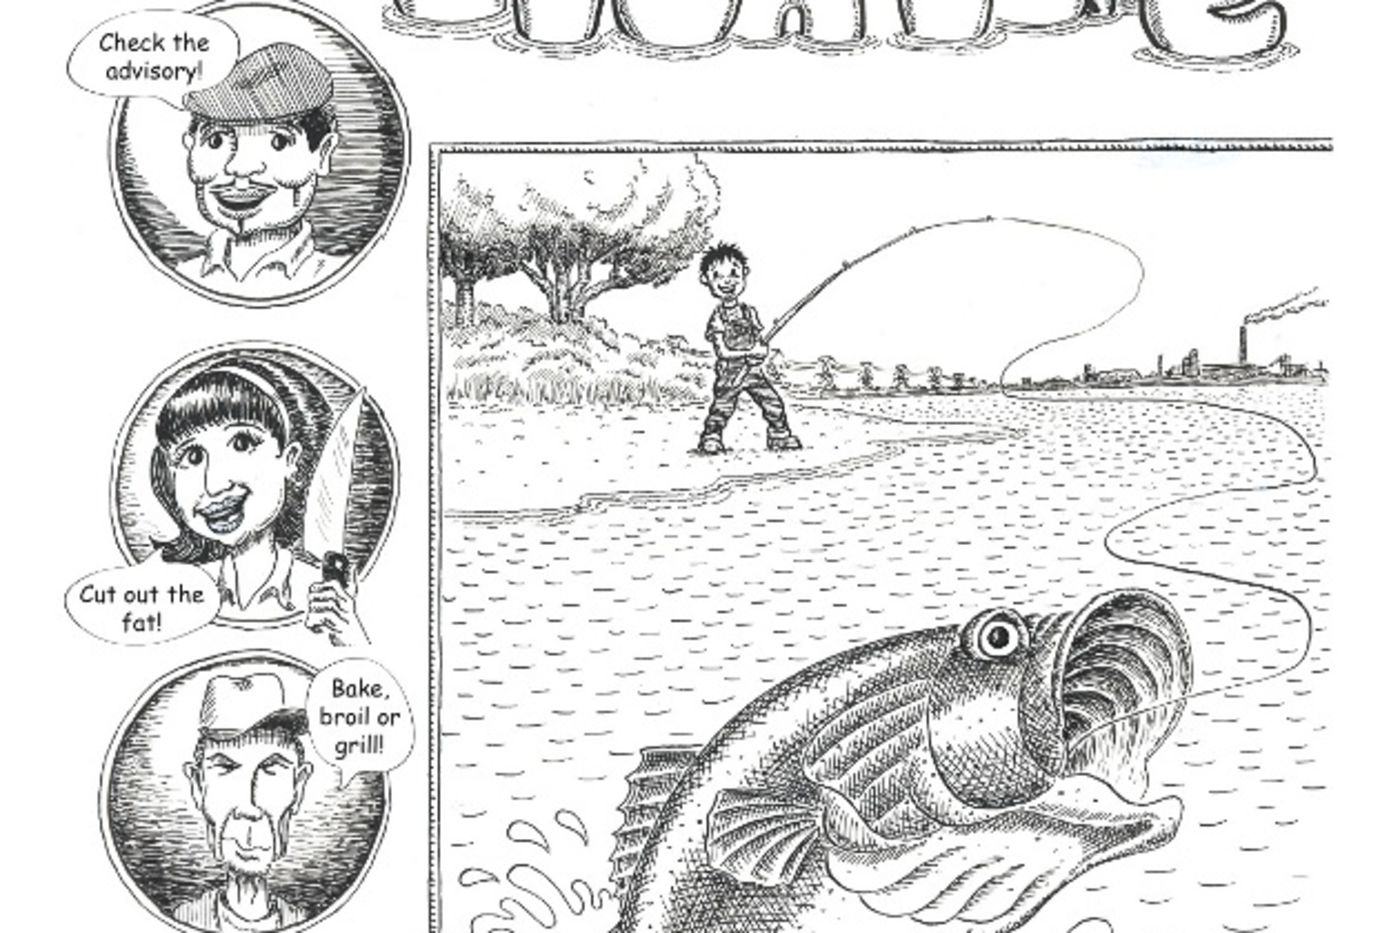 Science Action publishes comic book on fishing and